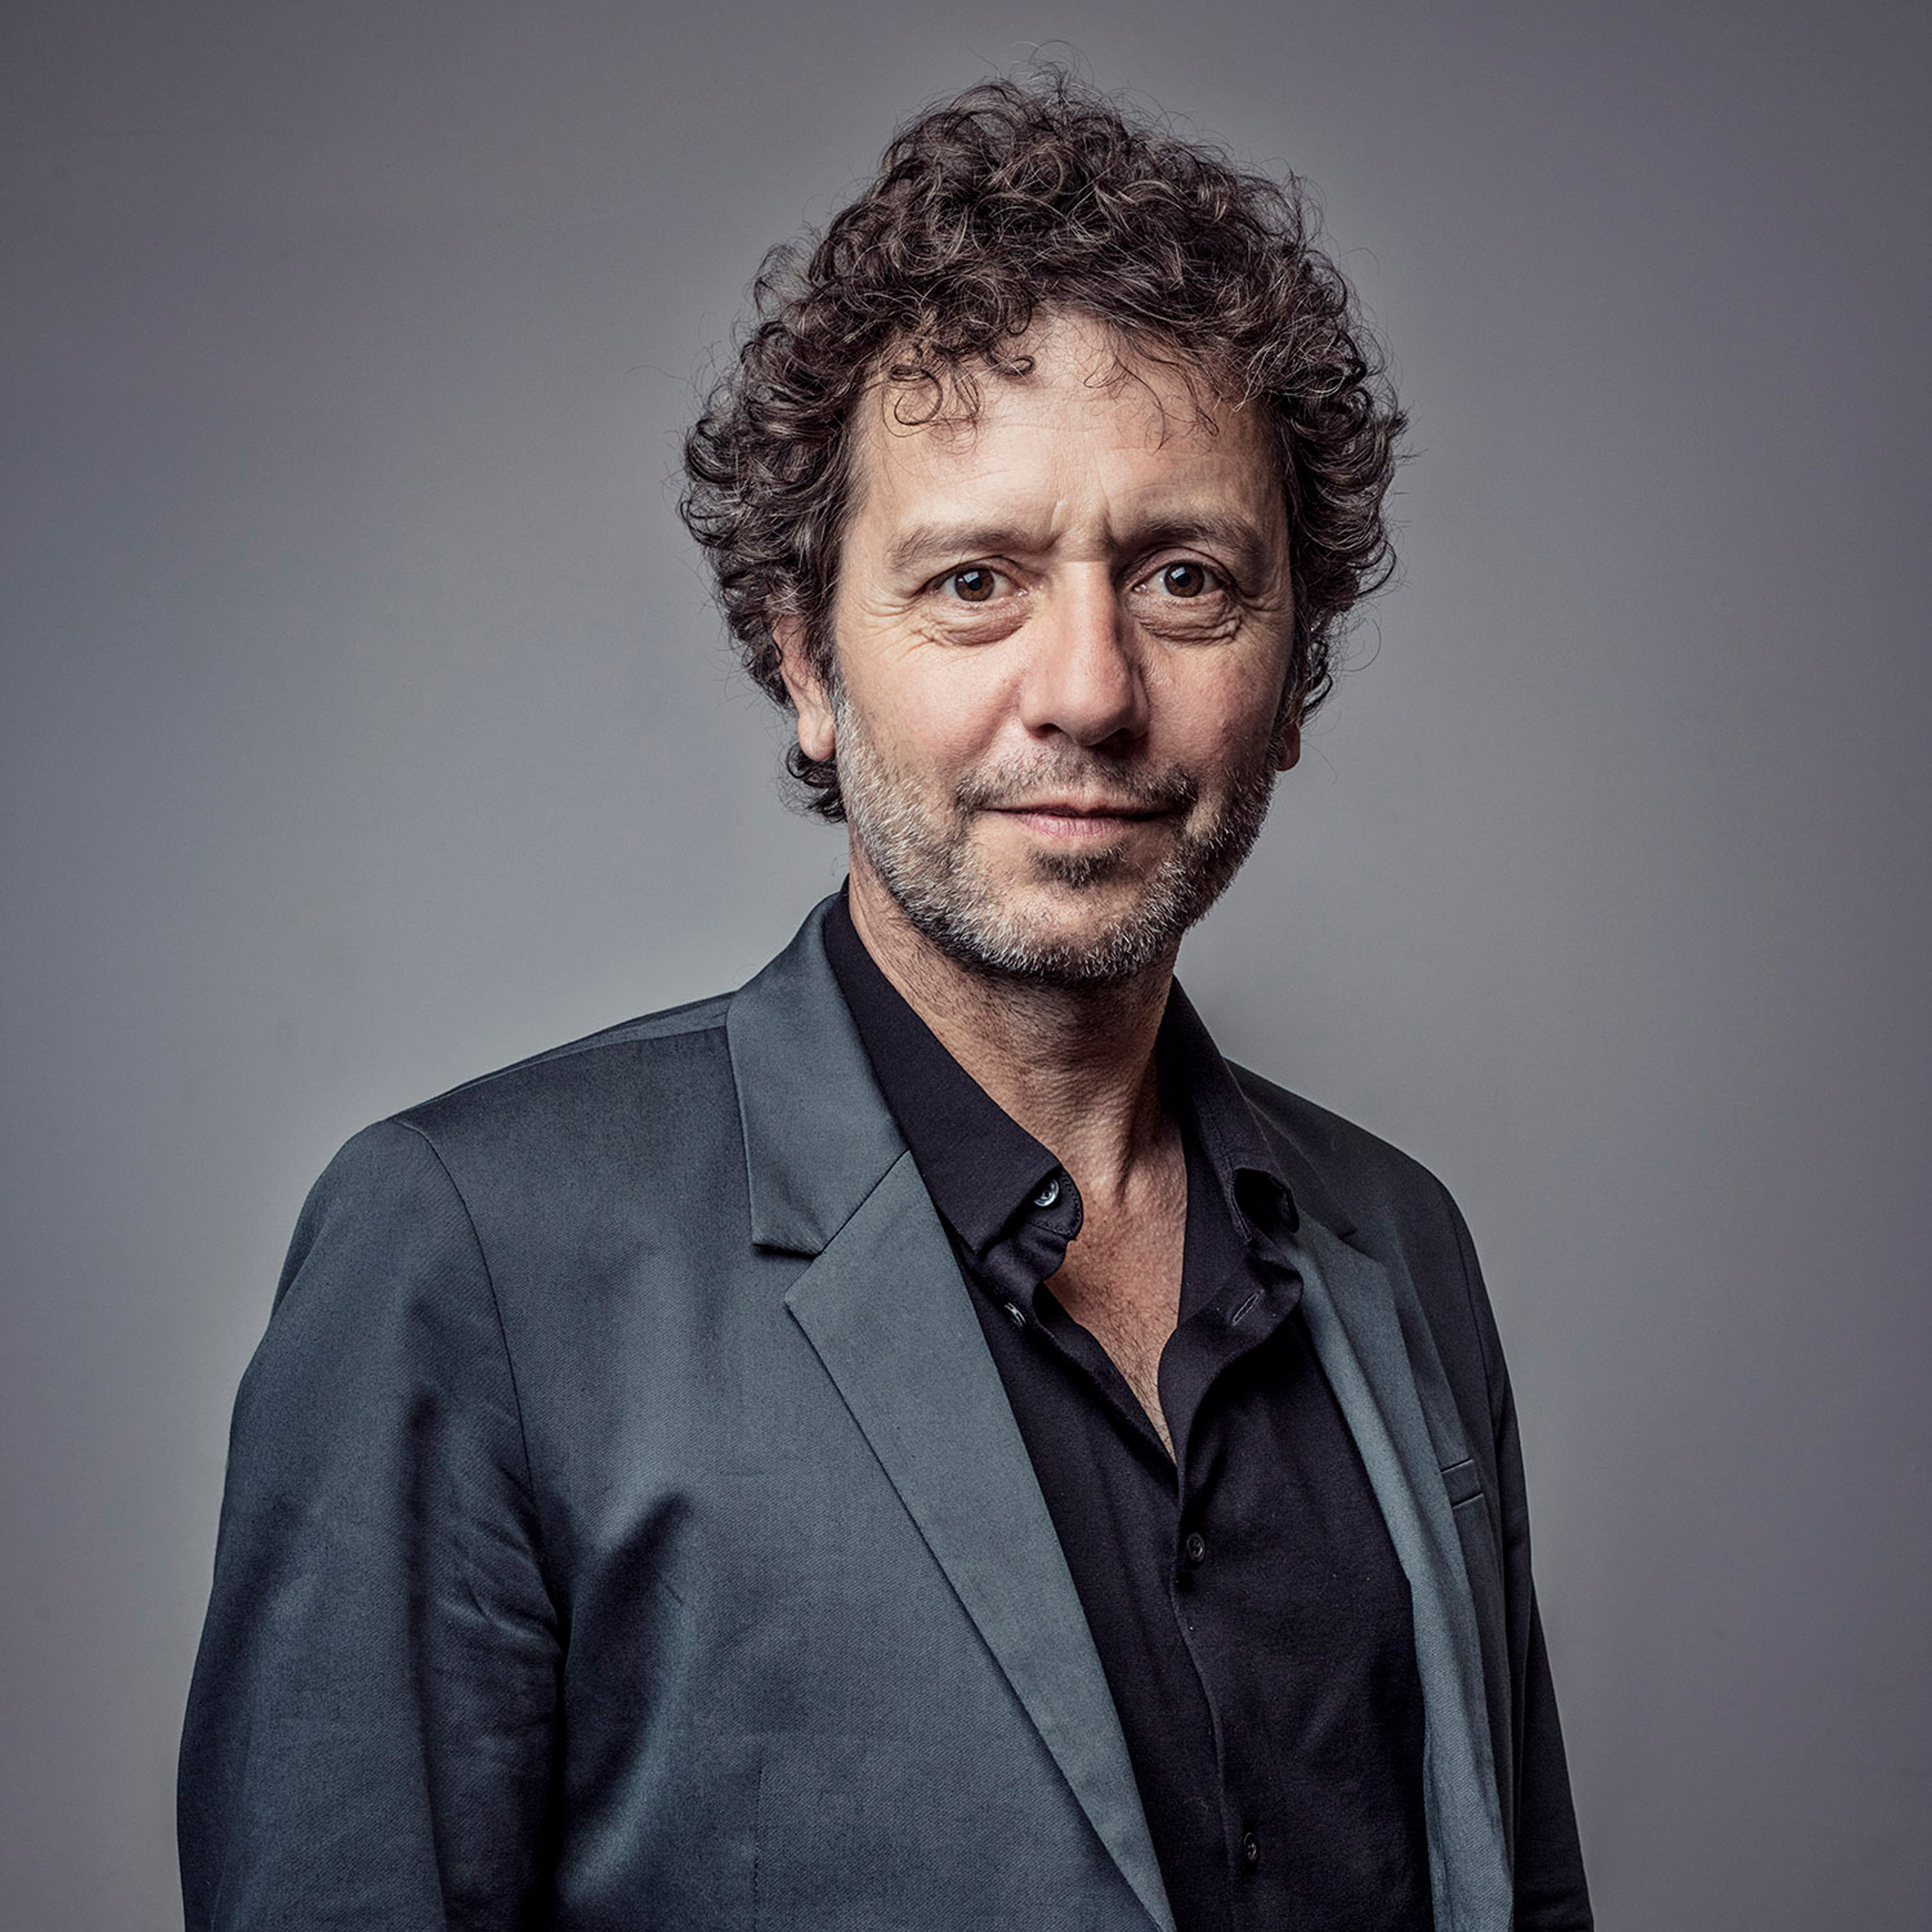 Portrait of Marcus Fairs, founder and editor-in-chief of Dezeen